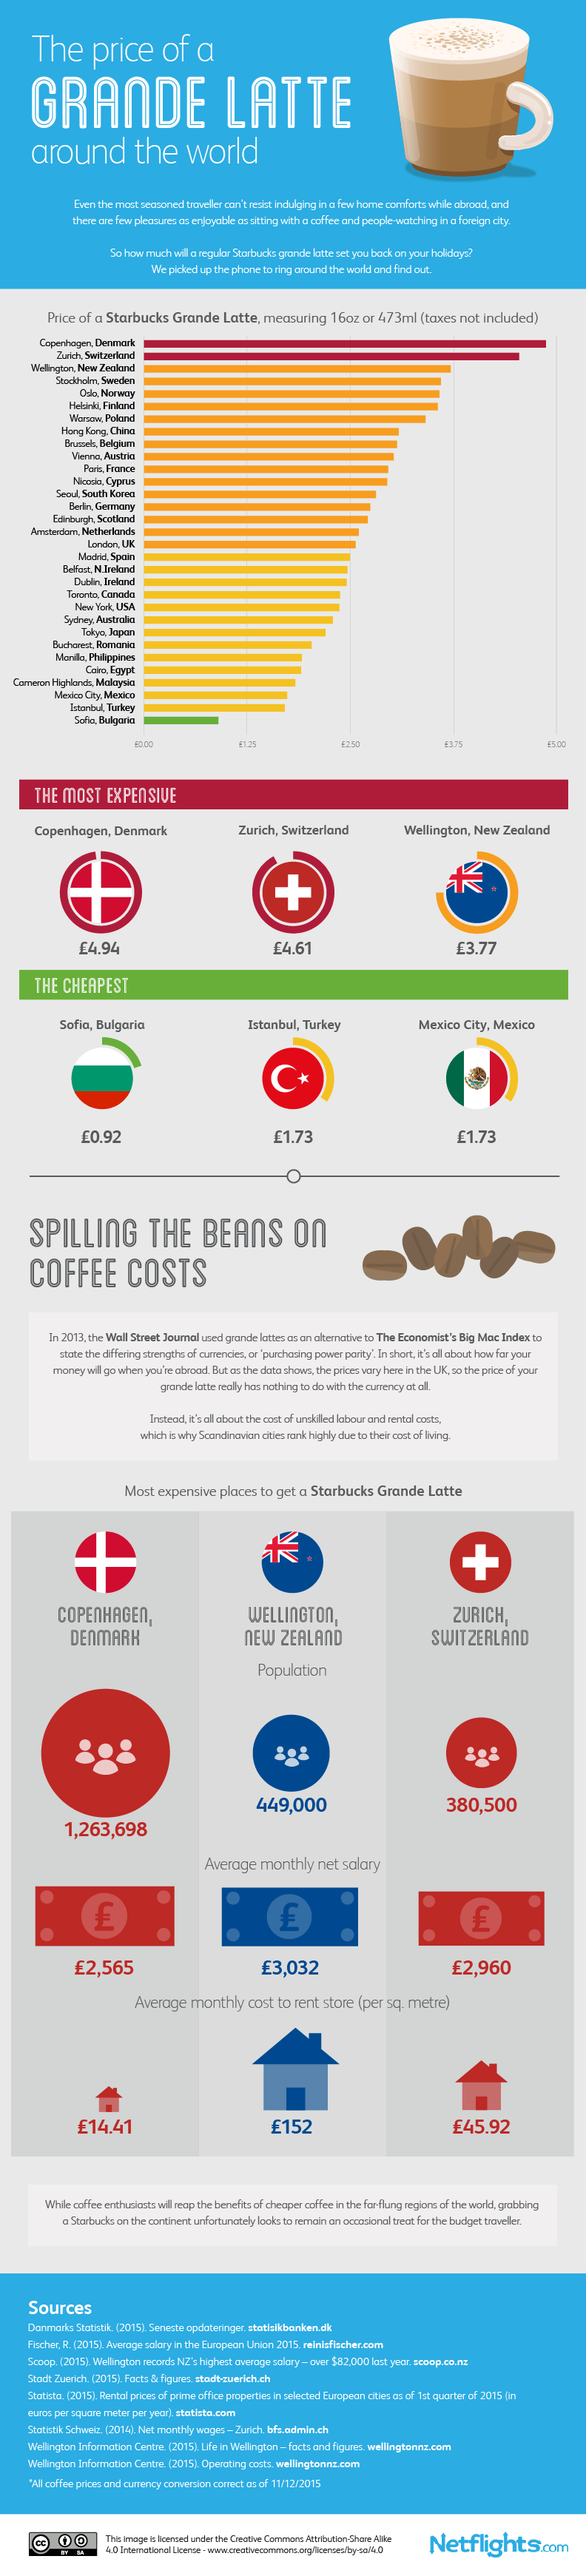 the-price-of-grande-latte-around-the-world